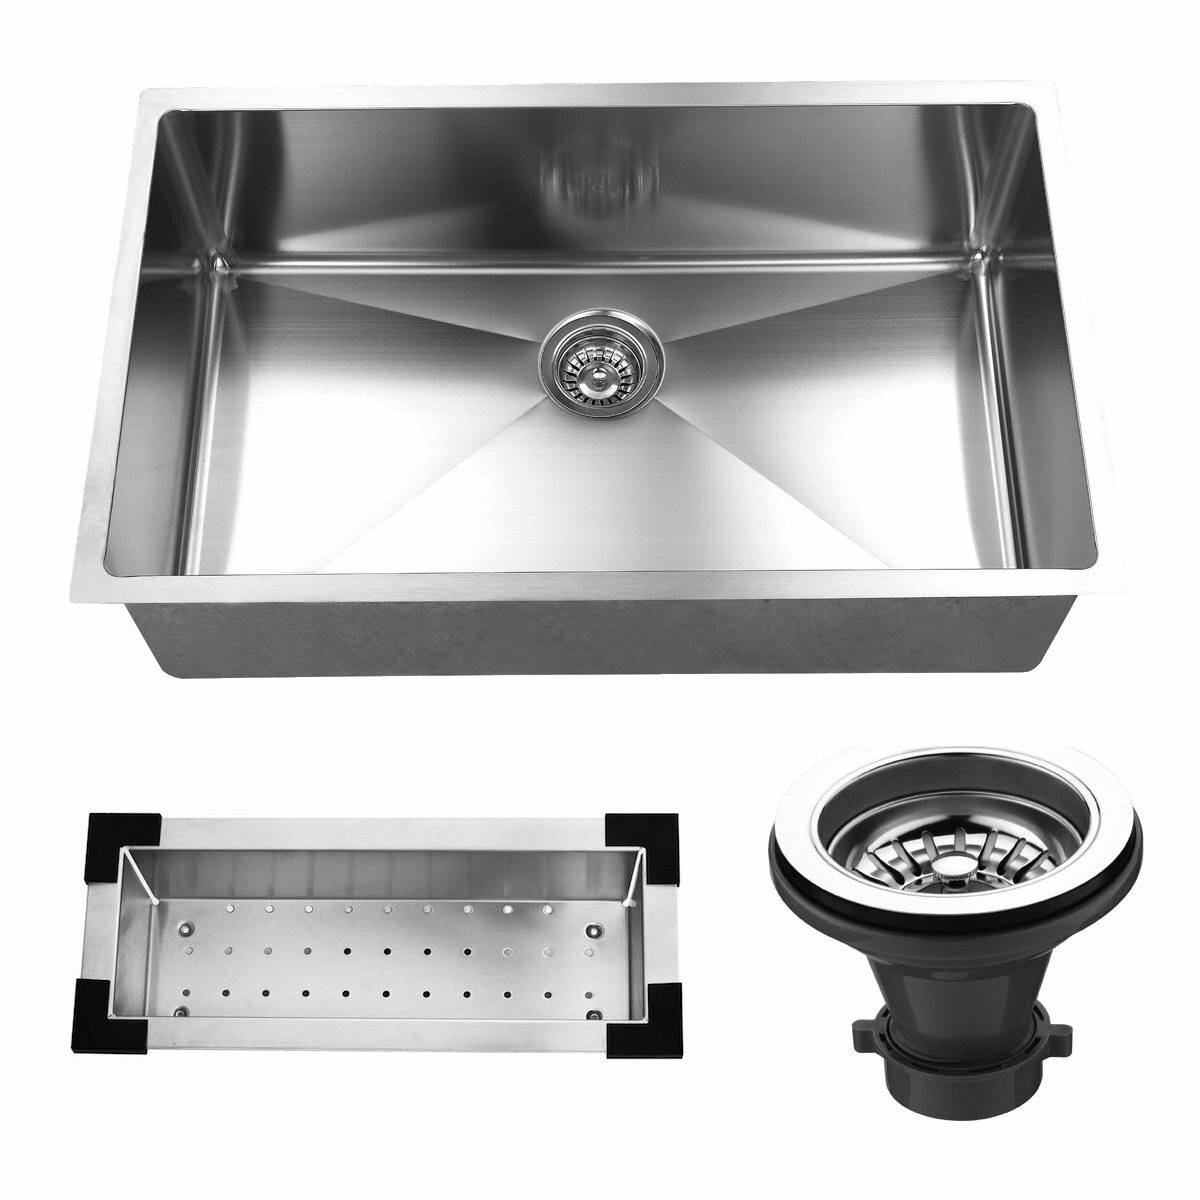 Stainless Steel Single Bowl Kitchen Sink : 32